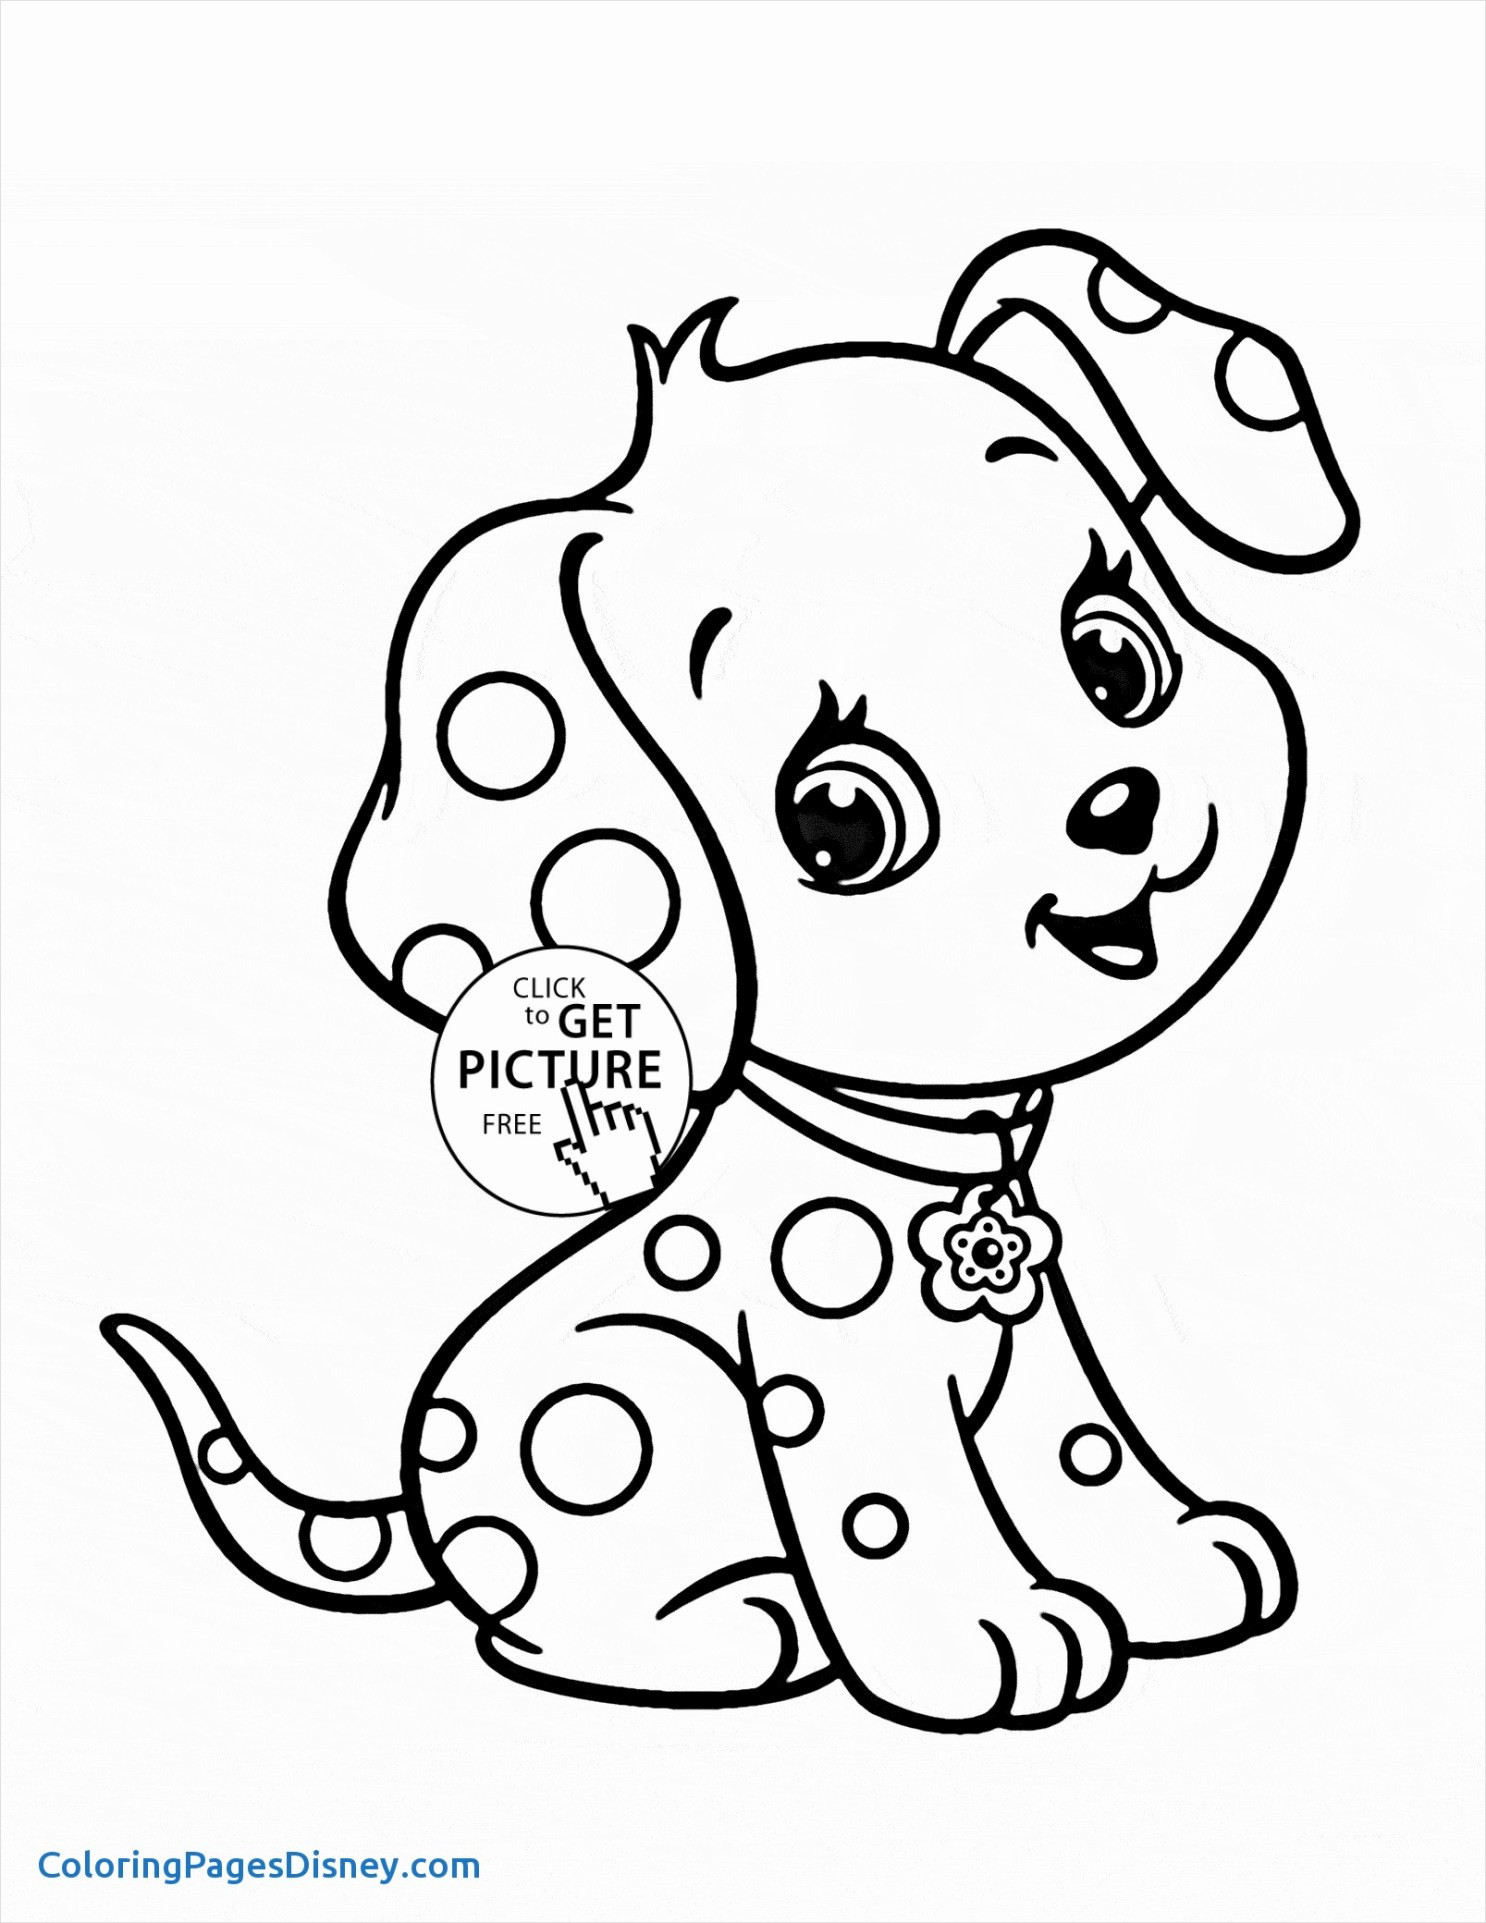 Disney Color By Number Printable Pages Coloring Pages Free Trollsg Pages Troll Princess Summer Elegant